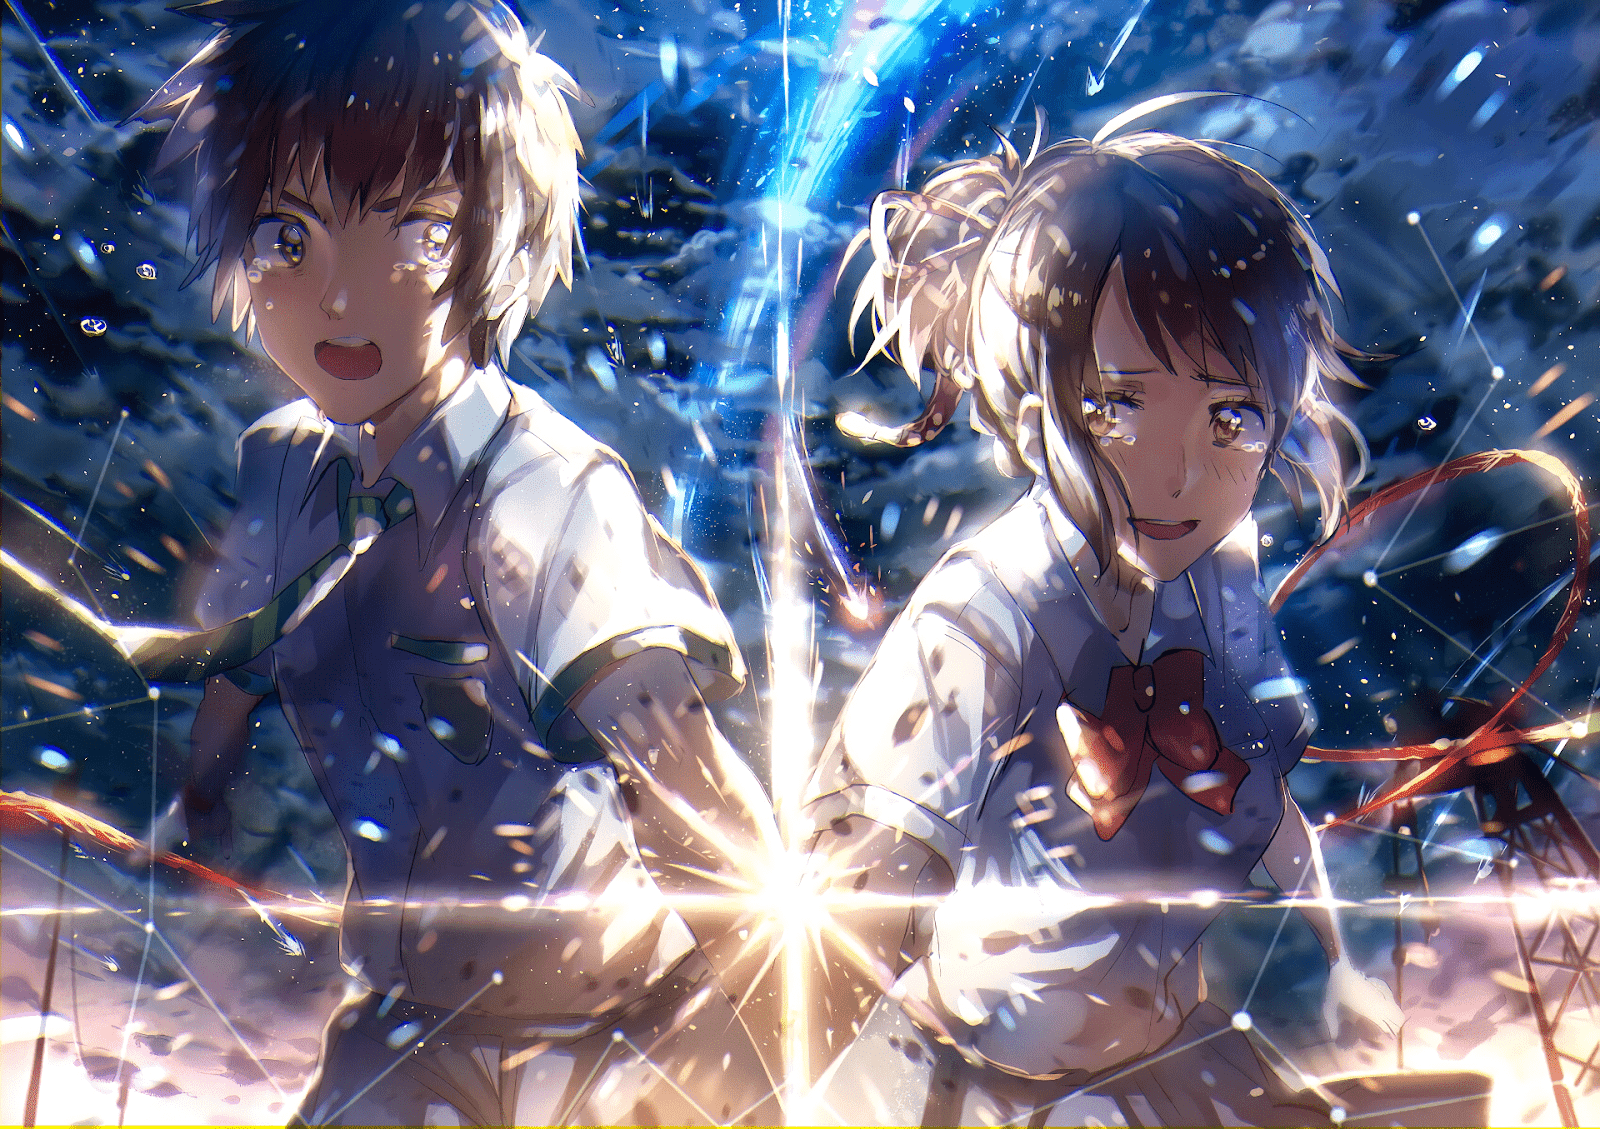 AowVN%2B%252821%2529 - [ Hình Nền ] Anime Your Name. - Kimi no Nawa full HD cực đẹp | Anime Wallpaper